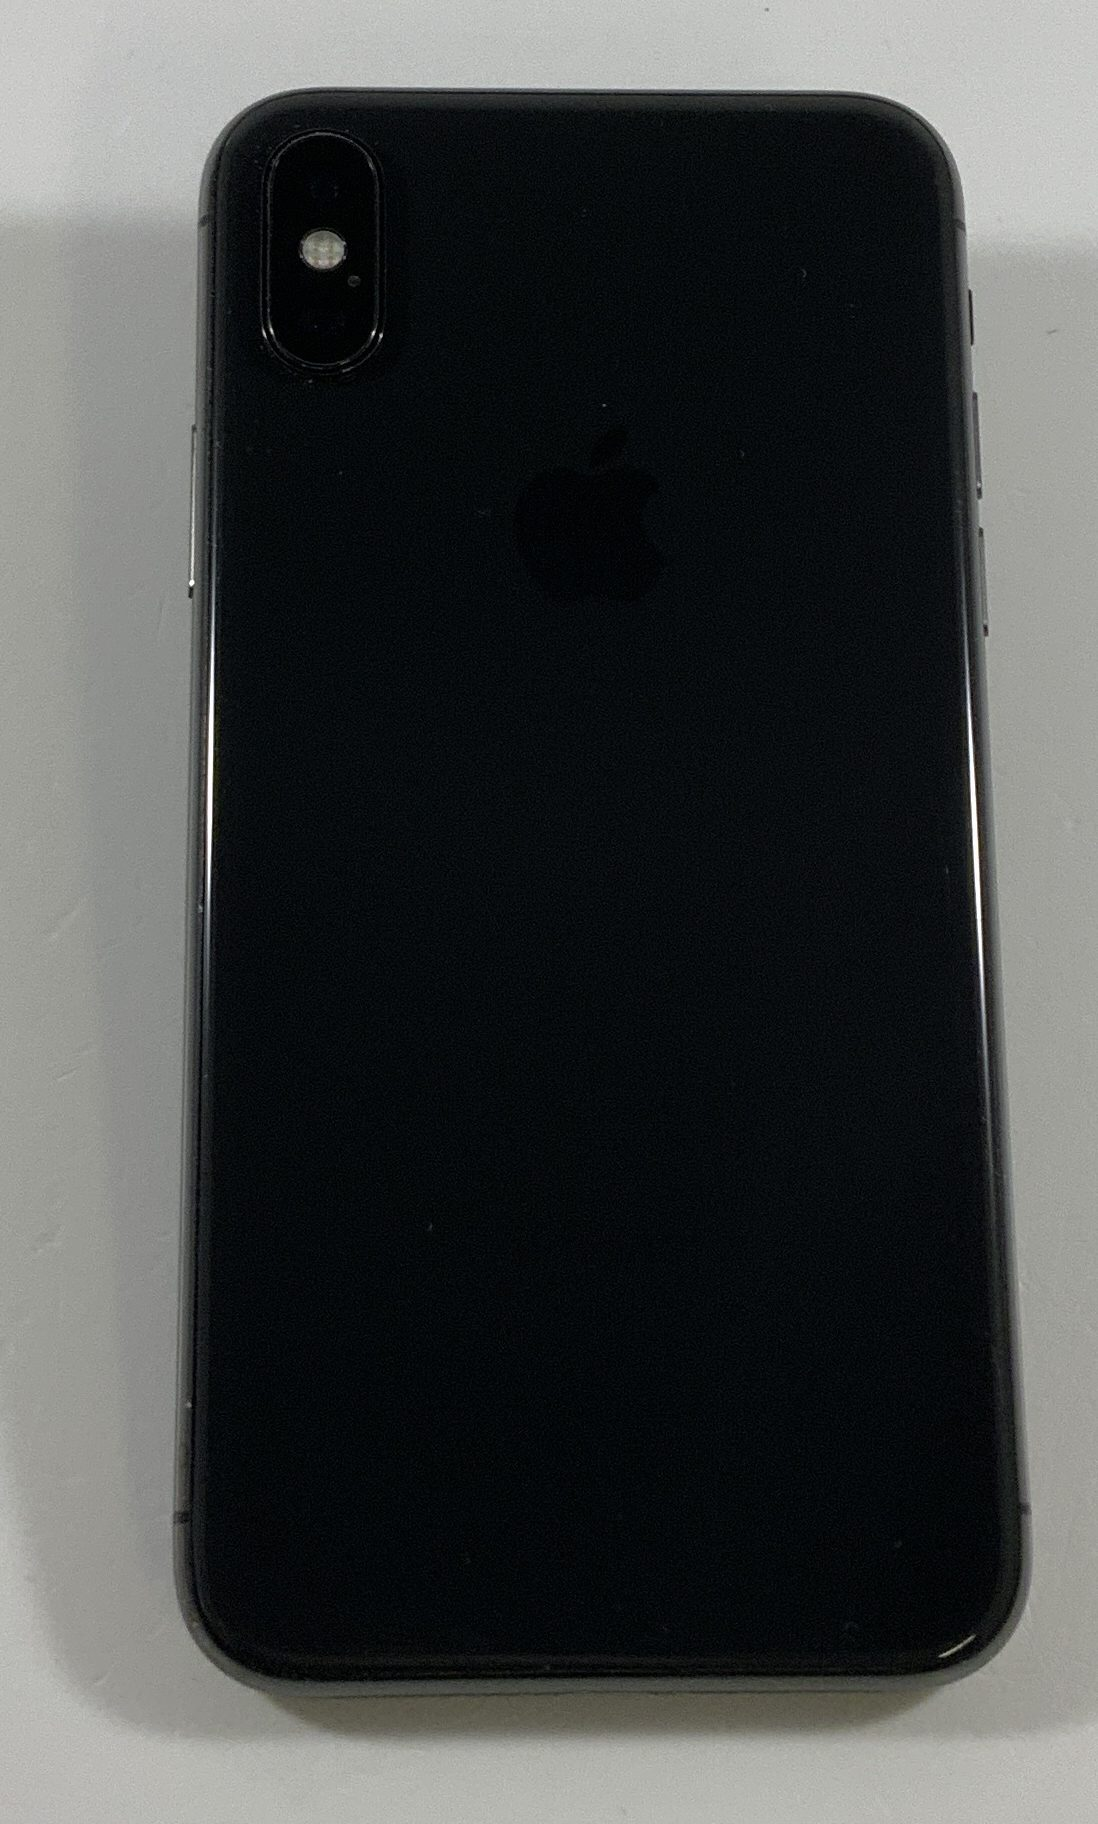 iPhone X 256GB, 256GB, Space Gray, immagine 2